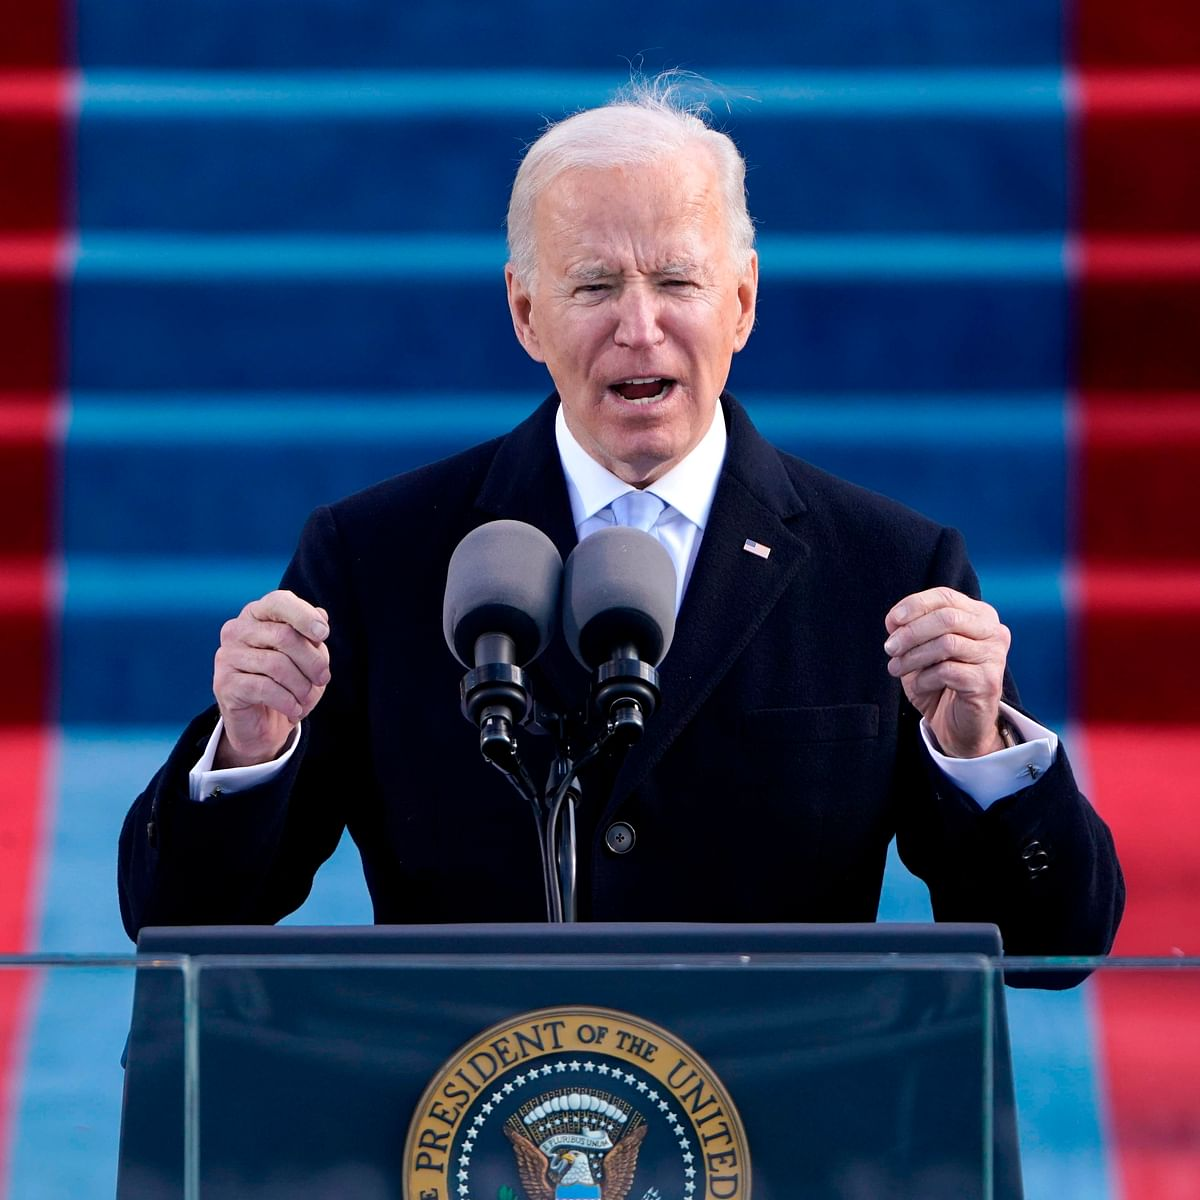 Google's Sundar Pichai, Apple's Tim Cook applaud US President Joe Biden's immigration reforms